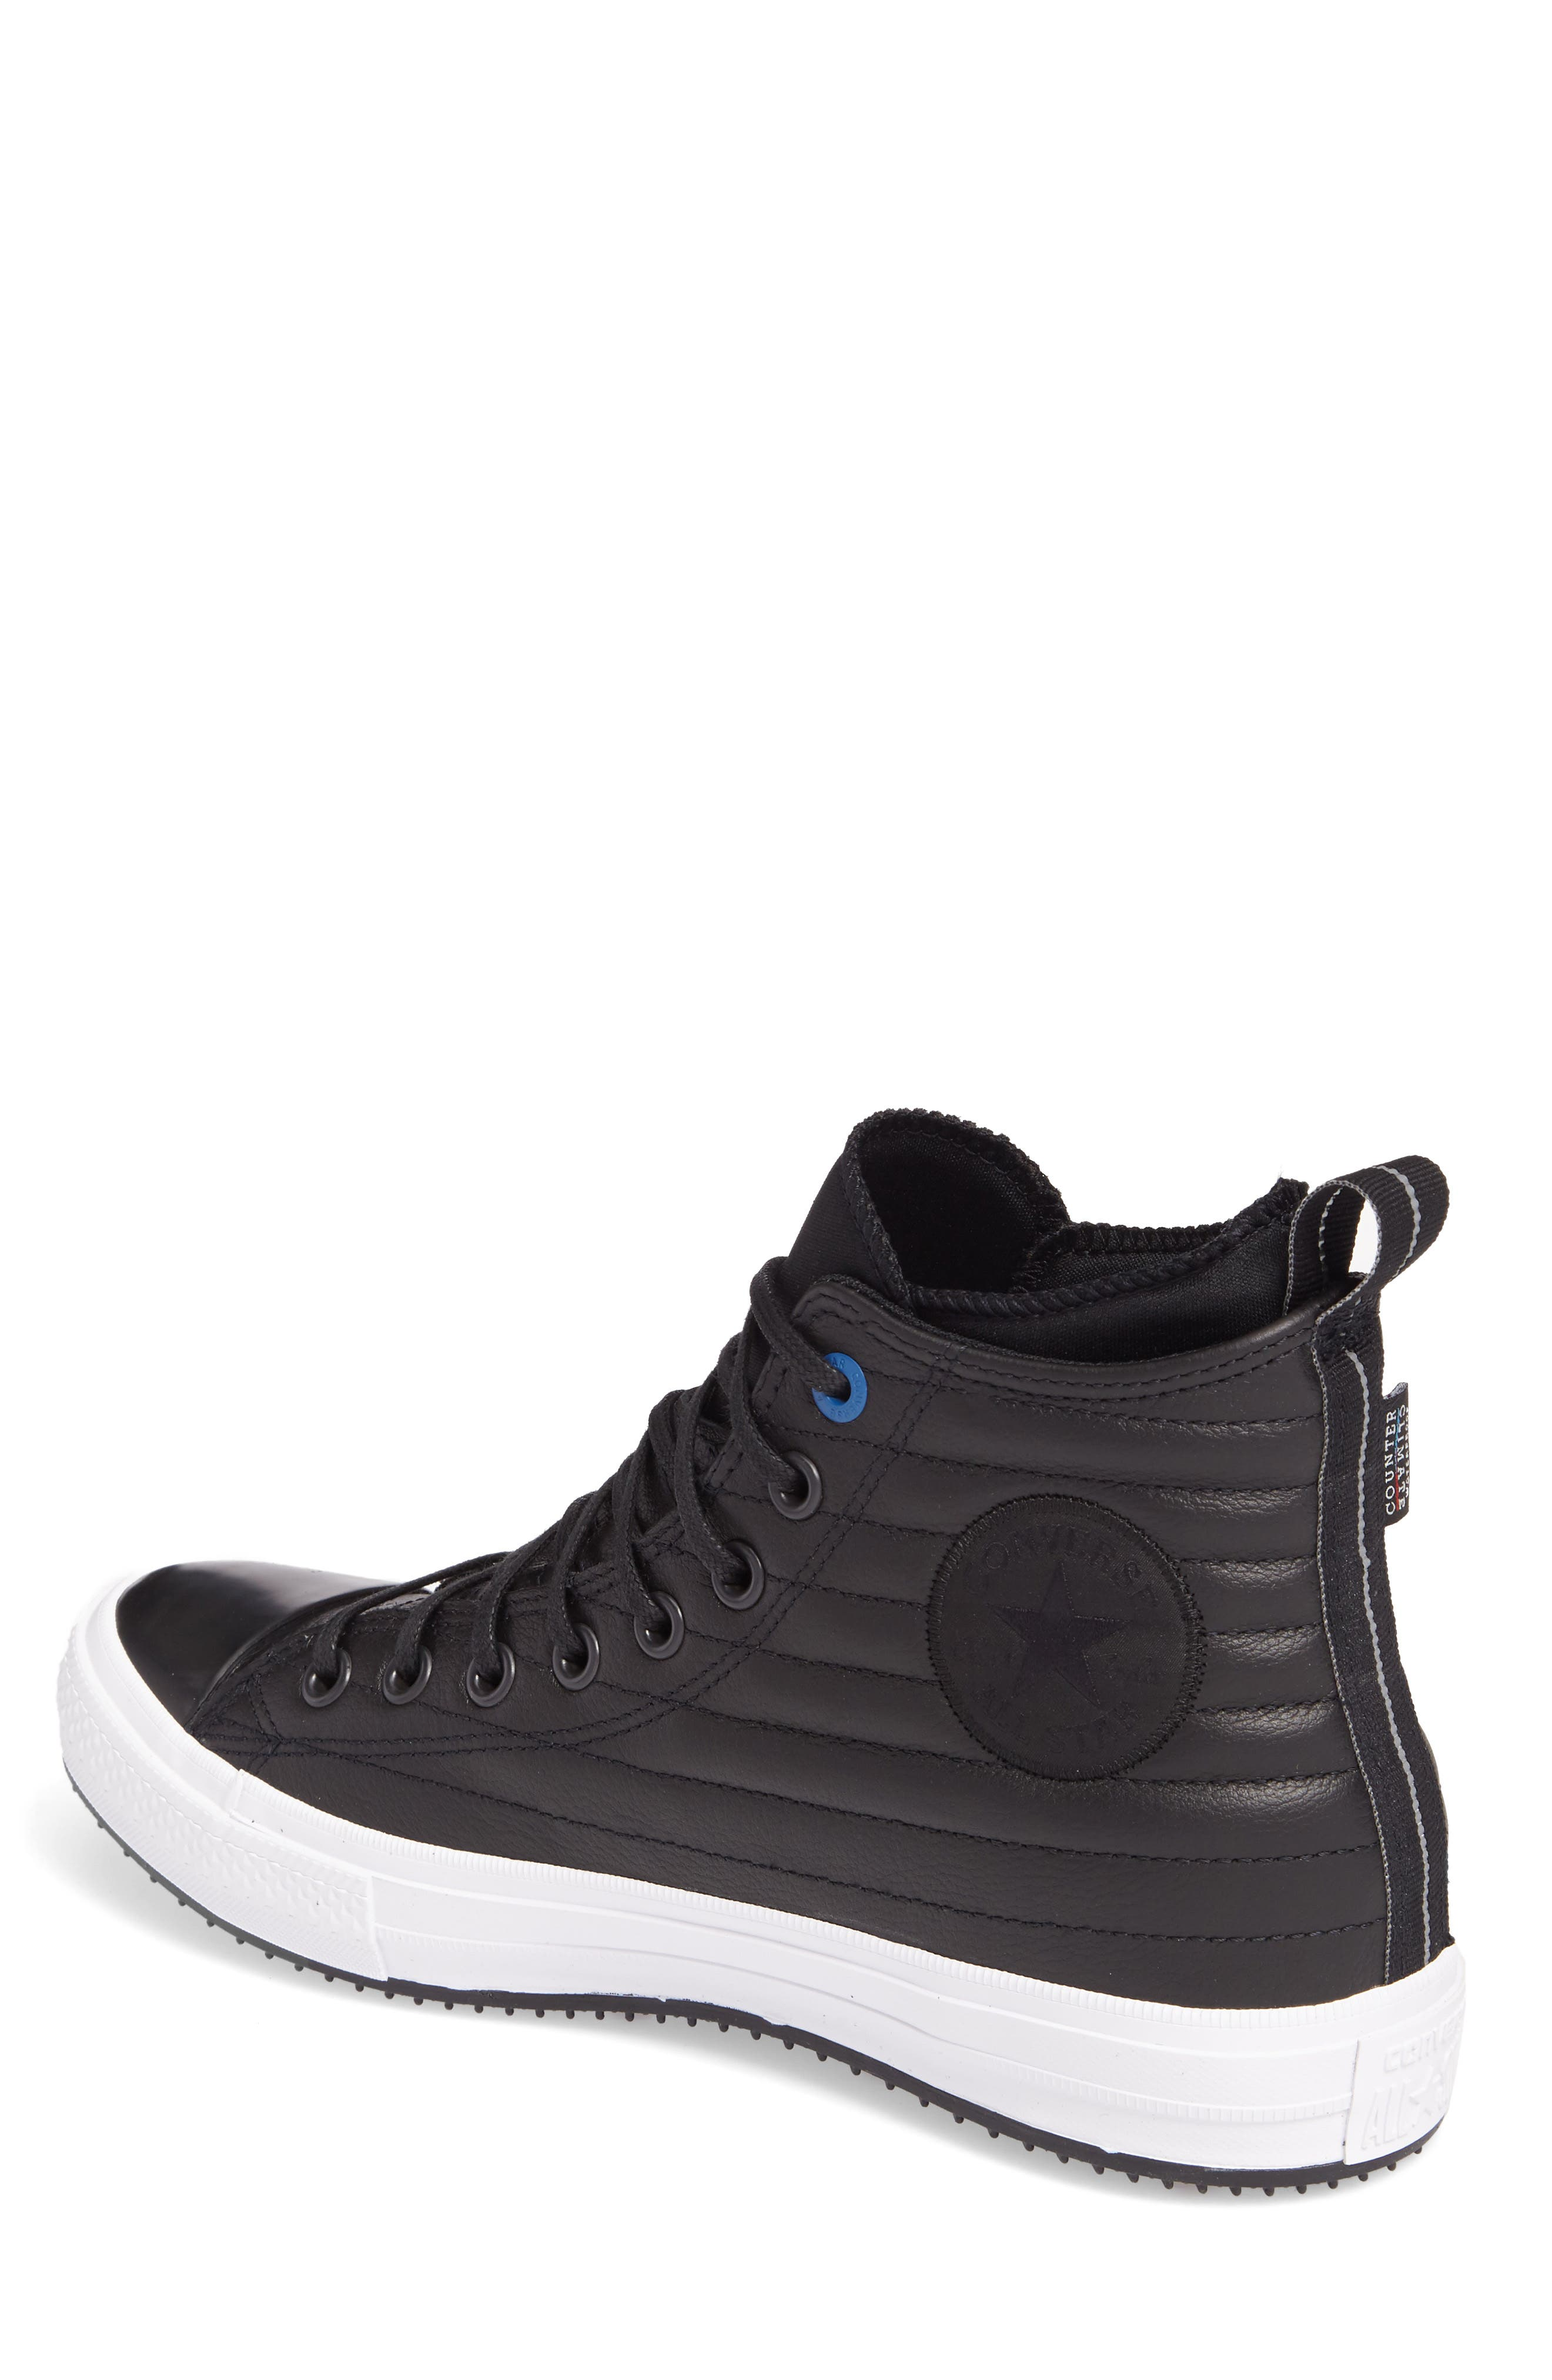 Chuck Taylor<sup>®</sup> All Star<sup>®</sup> Waterproof Quilted Sneaker,                             Alternate thumbnail 2, color,                             Black Leather